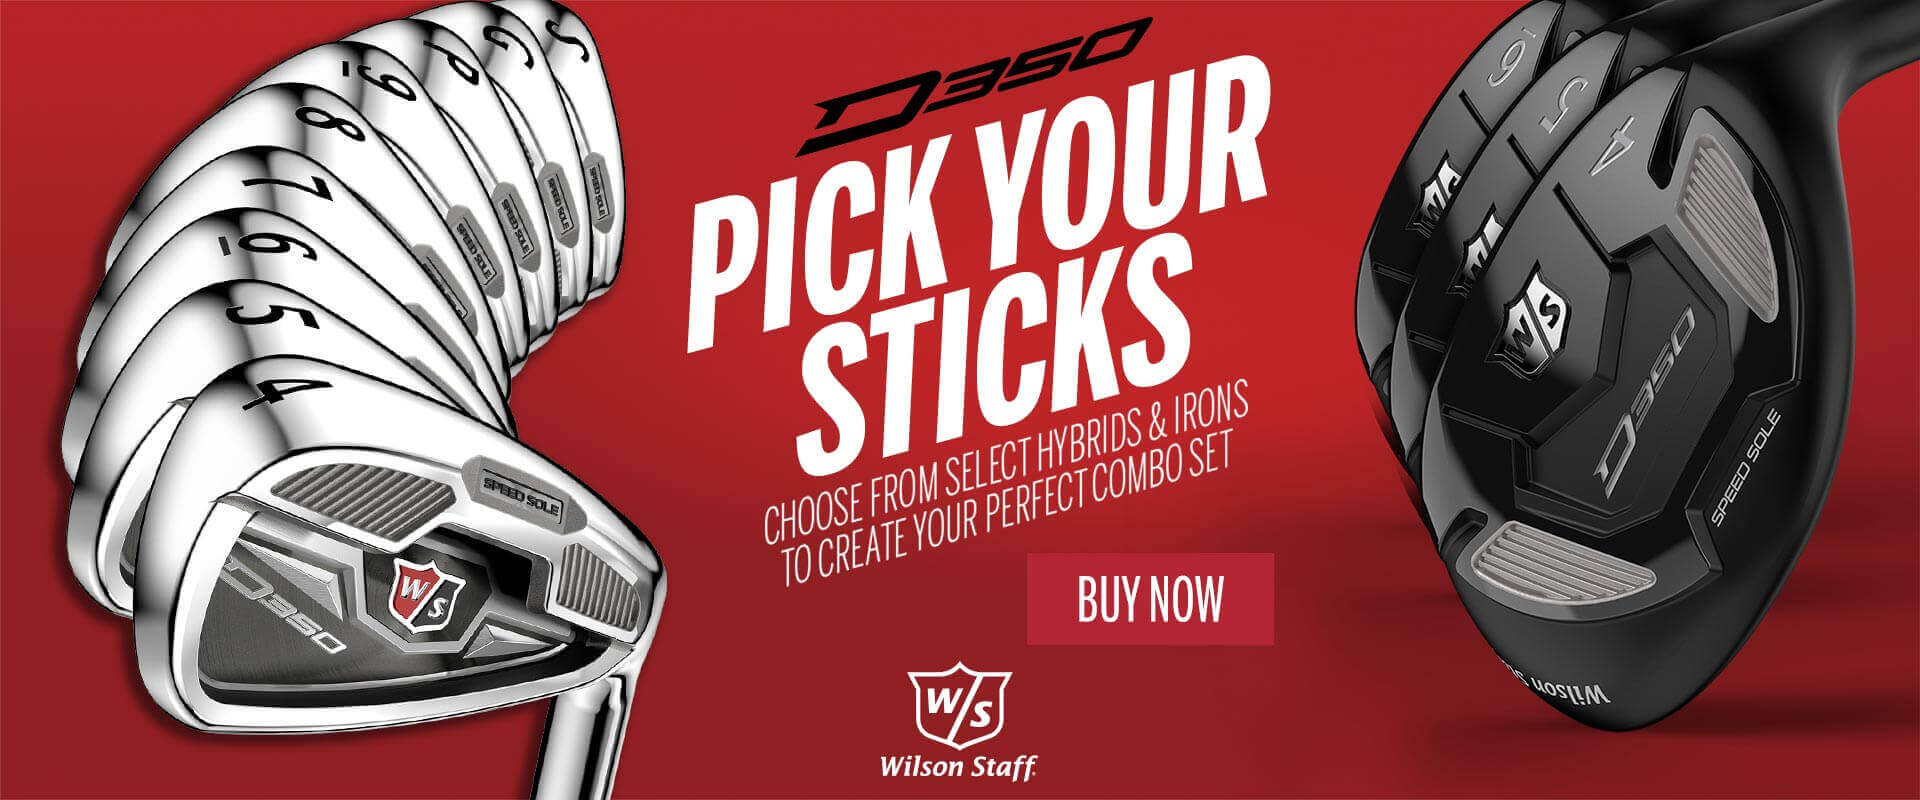 Pick Your Sticks. Choose from select hybrids and irons to create your perfect combo set - D350